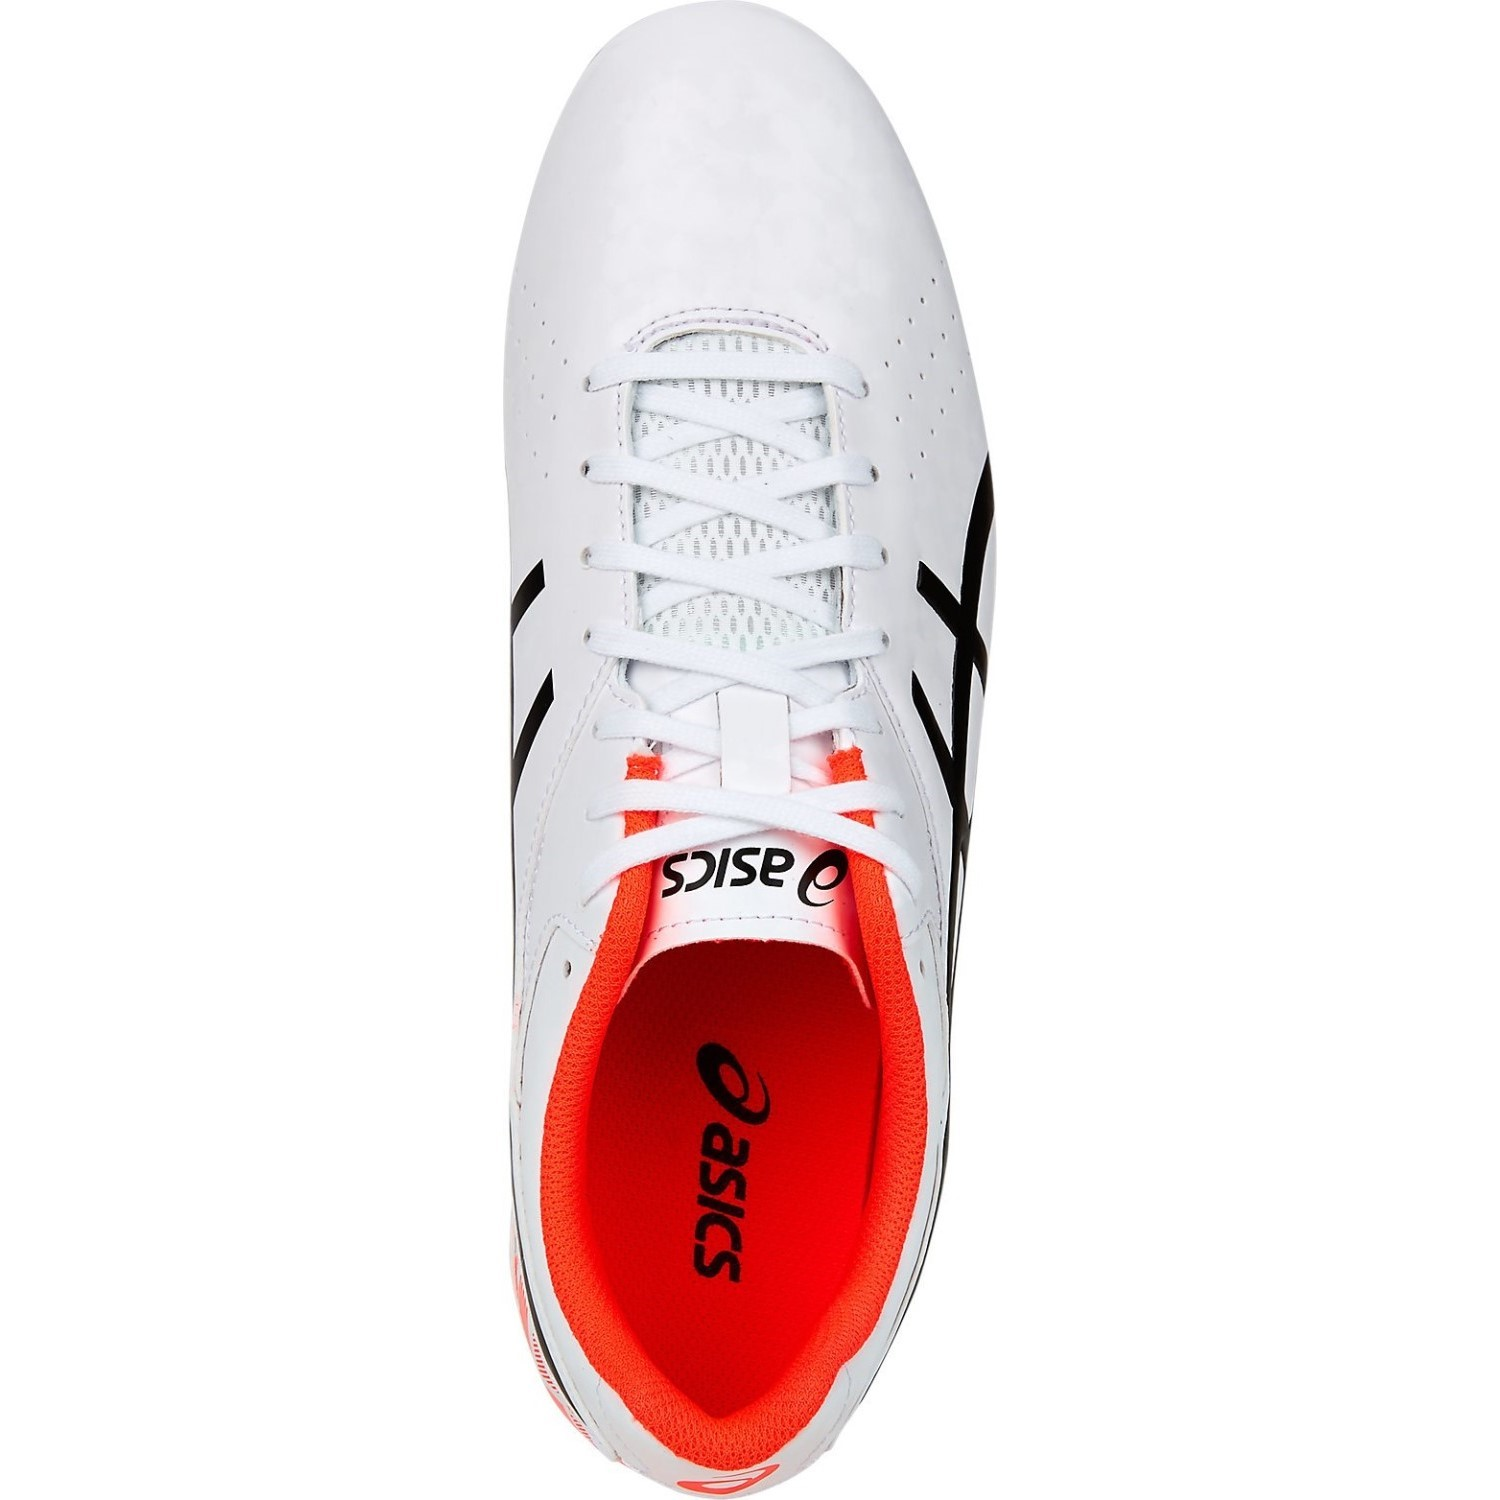 dac857b85d2 Asics Lethal Speed RS - Mens Football Boots - White Black Orange ...